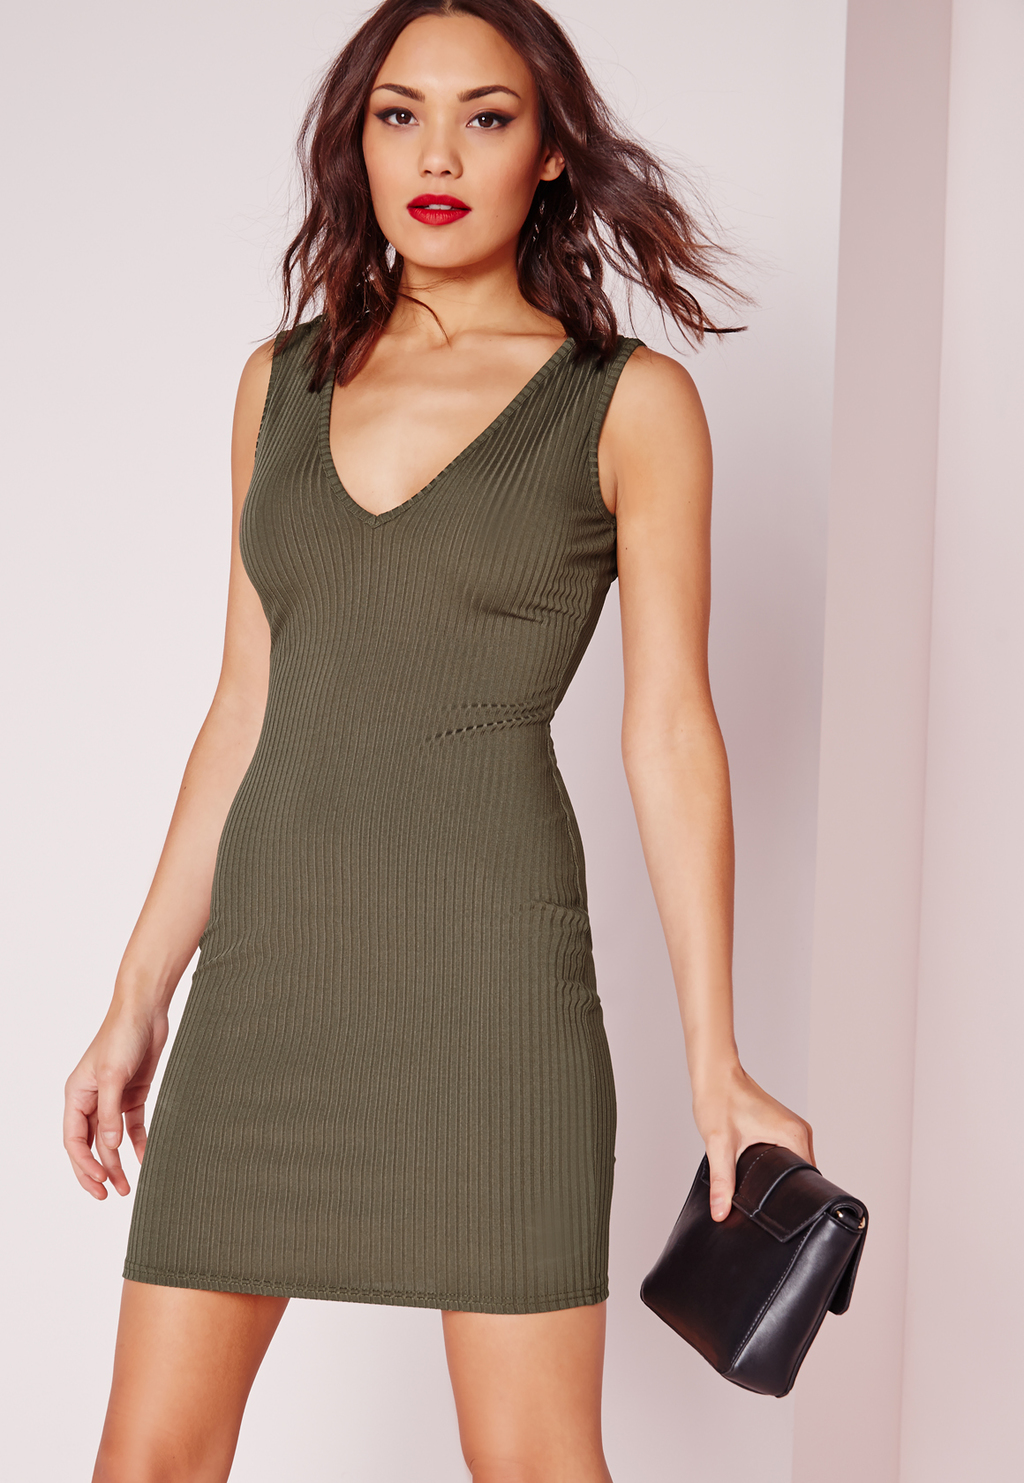 Ribbed Sleeveless Plunge Bodycon Dress Khaki, Beige - length: mid thigh; neckline: low v-neck; fit: tight; pattern: plain; sleeve style: sleeveless; style: bodycon; predominant colour: khaki; occasions: evening; fibres: viscose/rayon - stretch; sleeve length: sleeveless; texture group: jersey - clingy; pattern type: fabric; season: s/s 2016; wardrobe: event